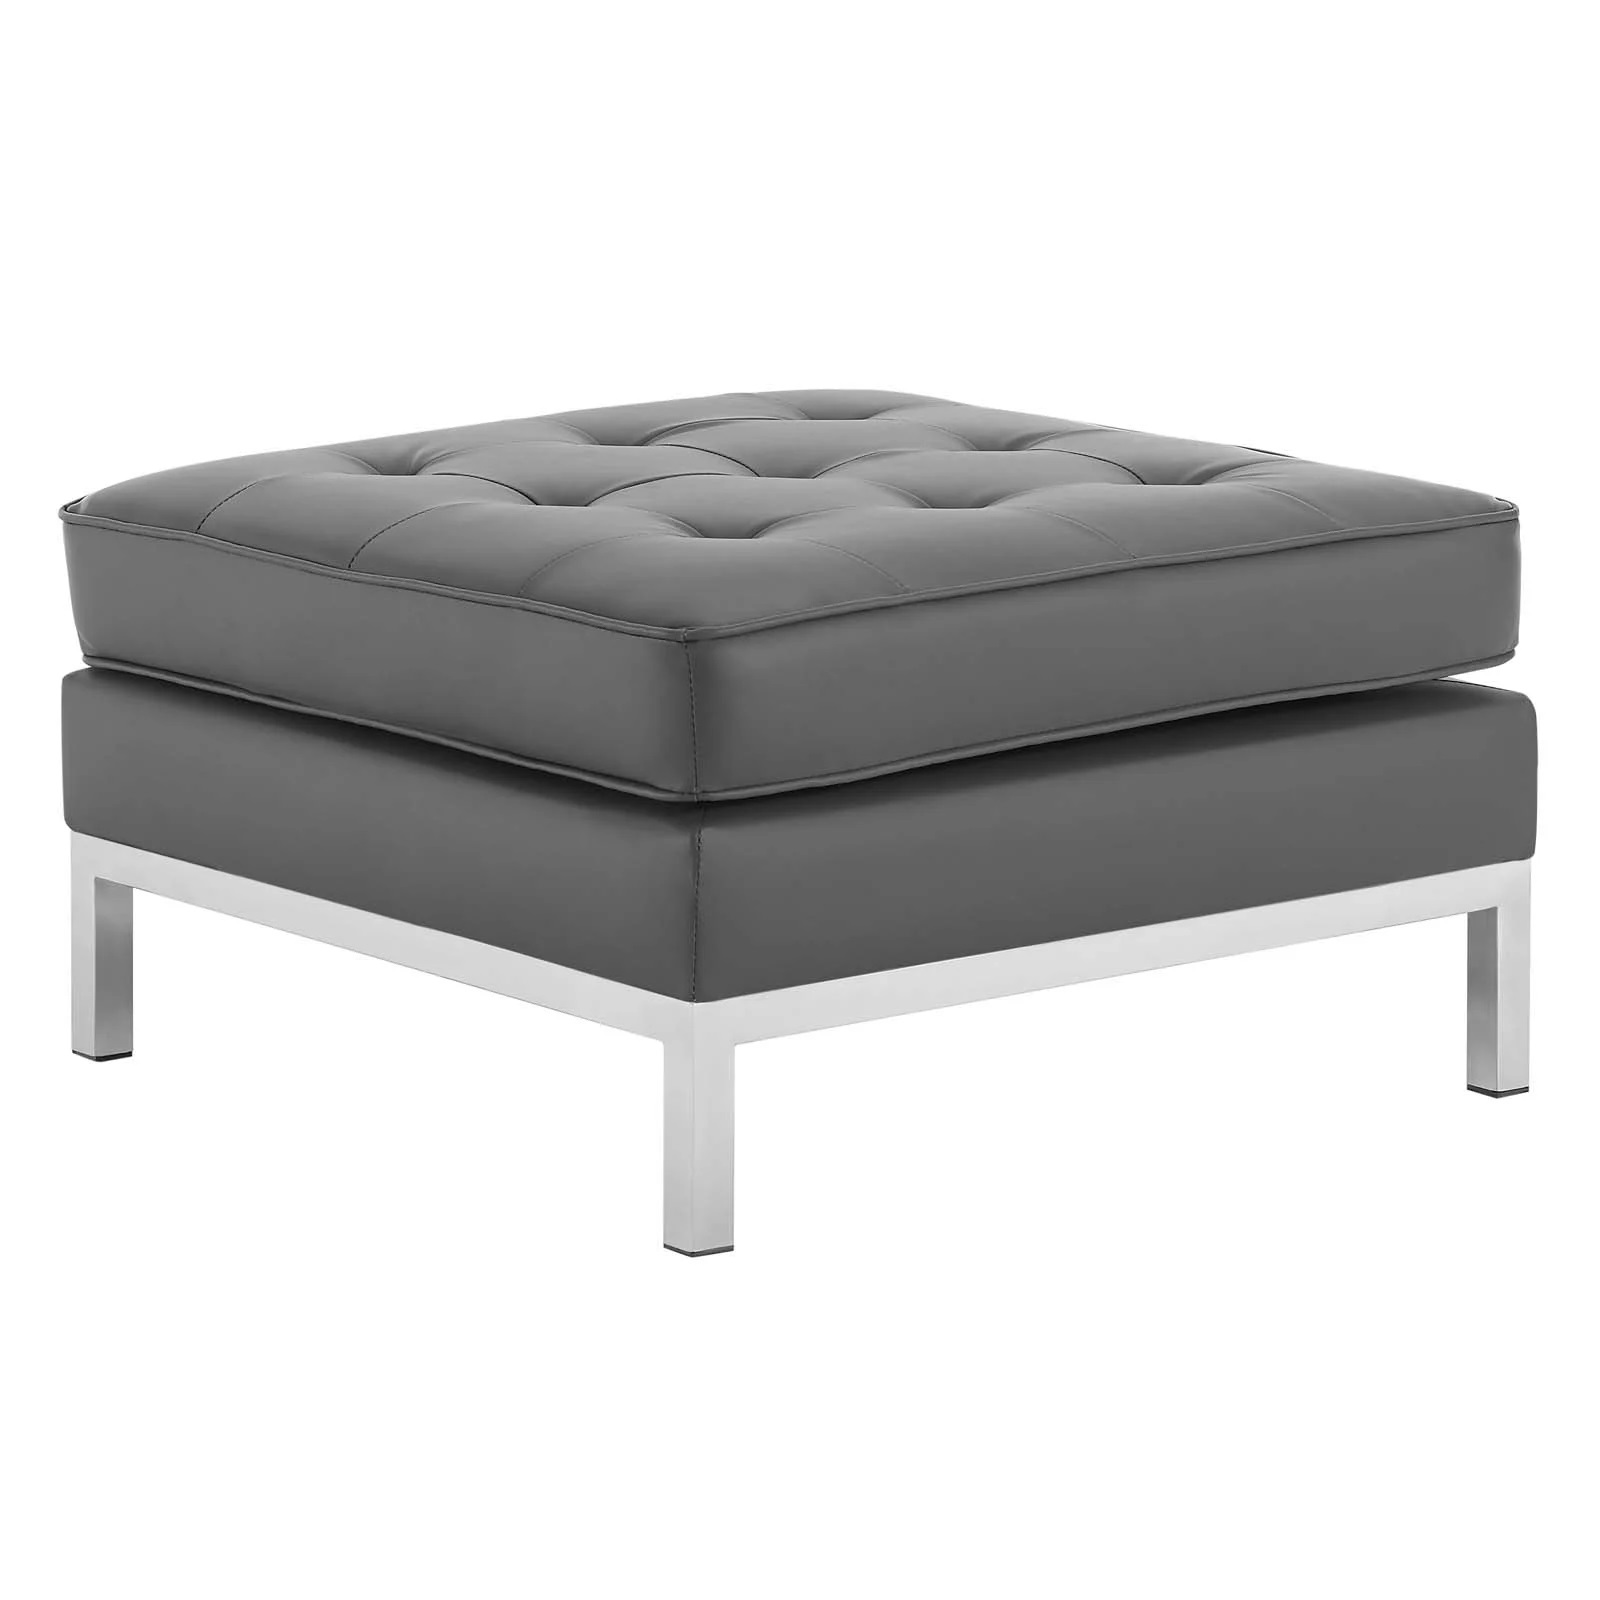 Loft Tufted Upholstered Faux Leather Ottoman in Silver Gray